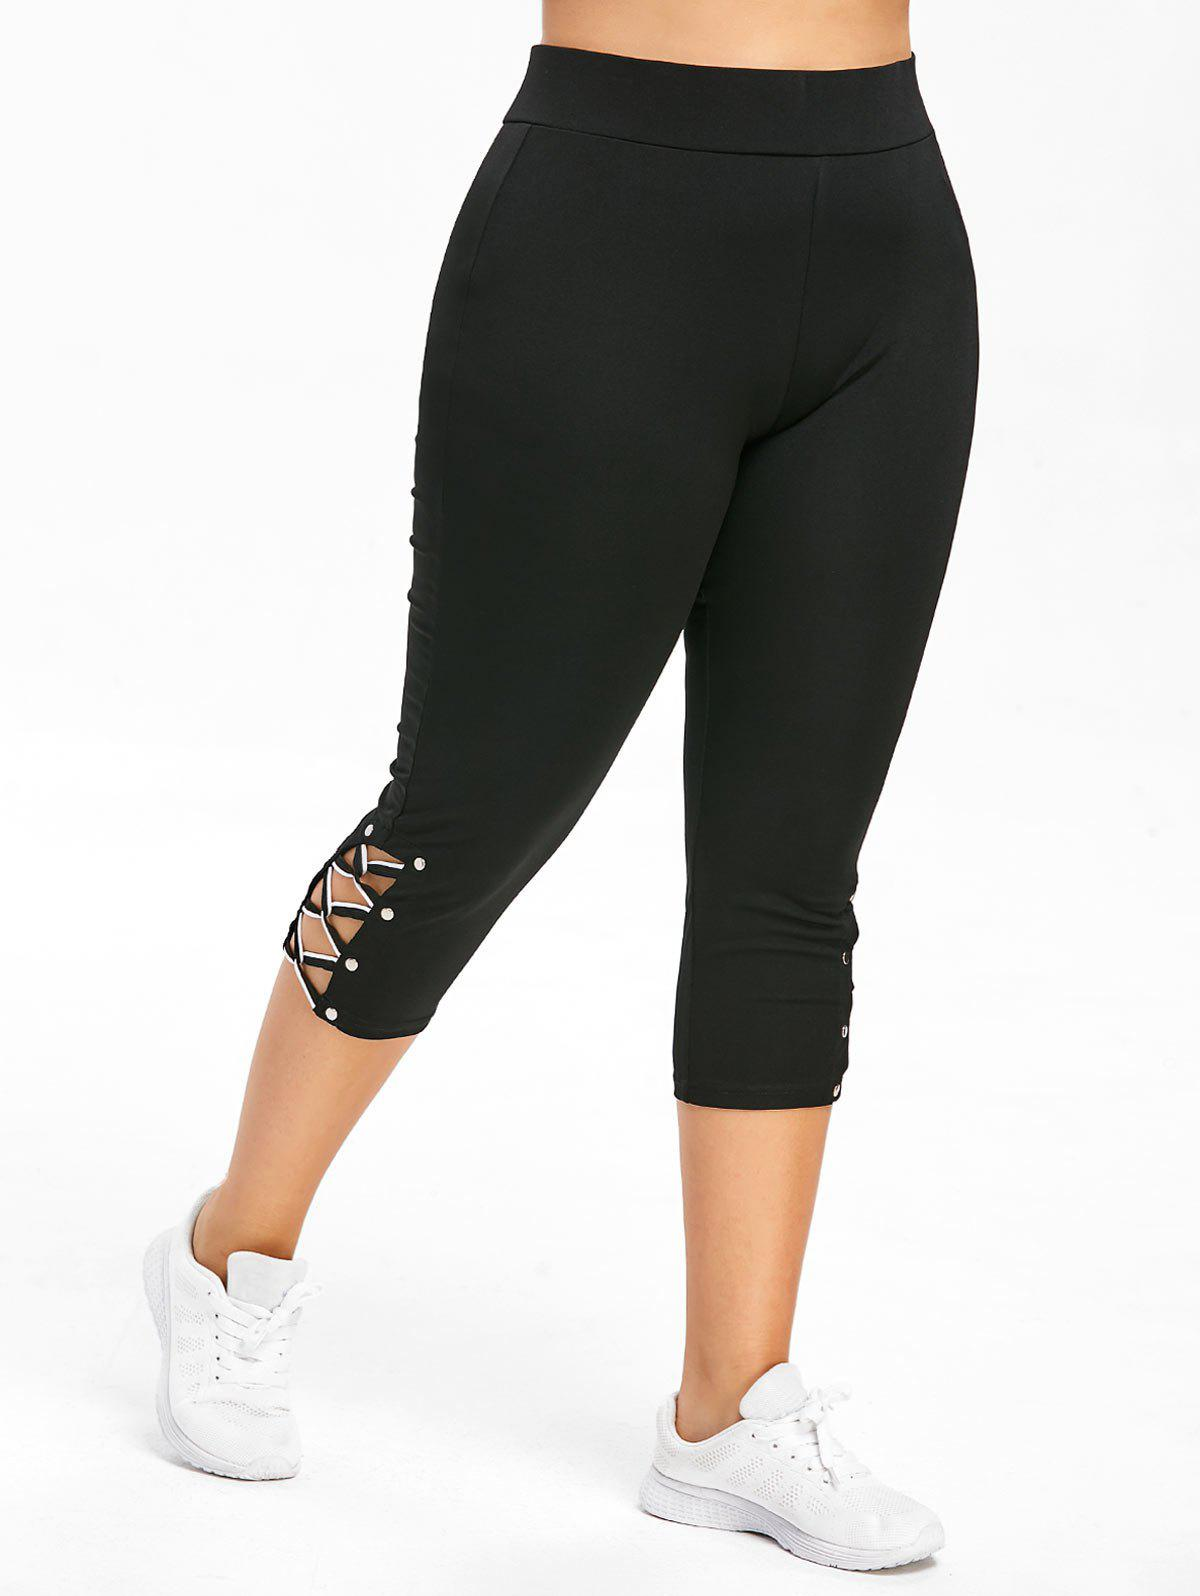 Chic Plus Size Criss Cross Capri Skinny Gym Leggings